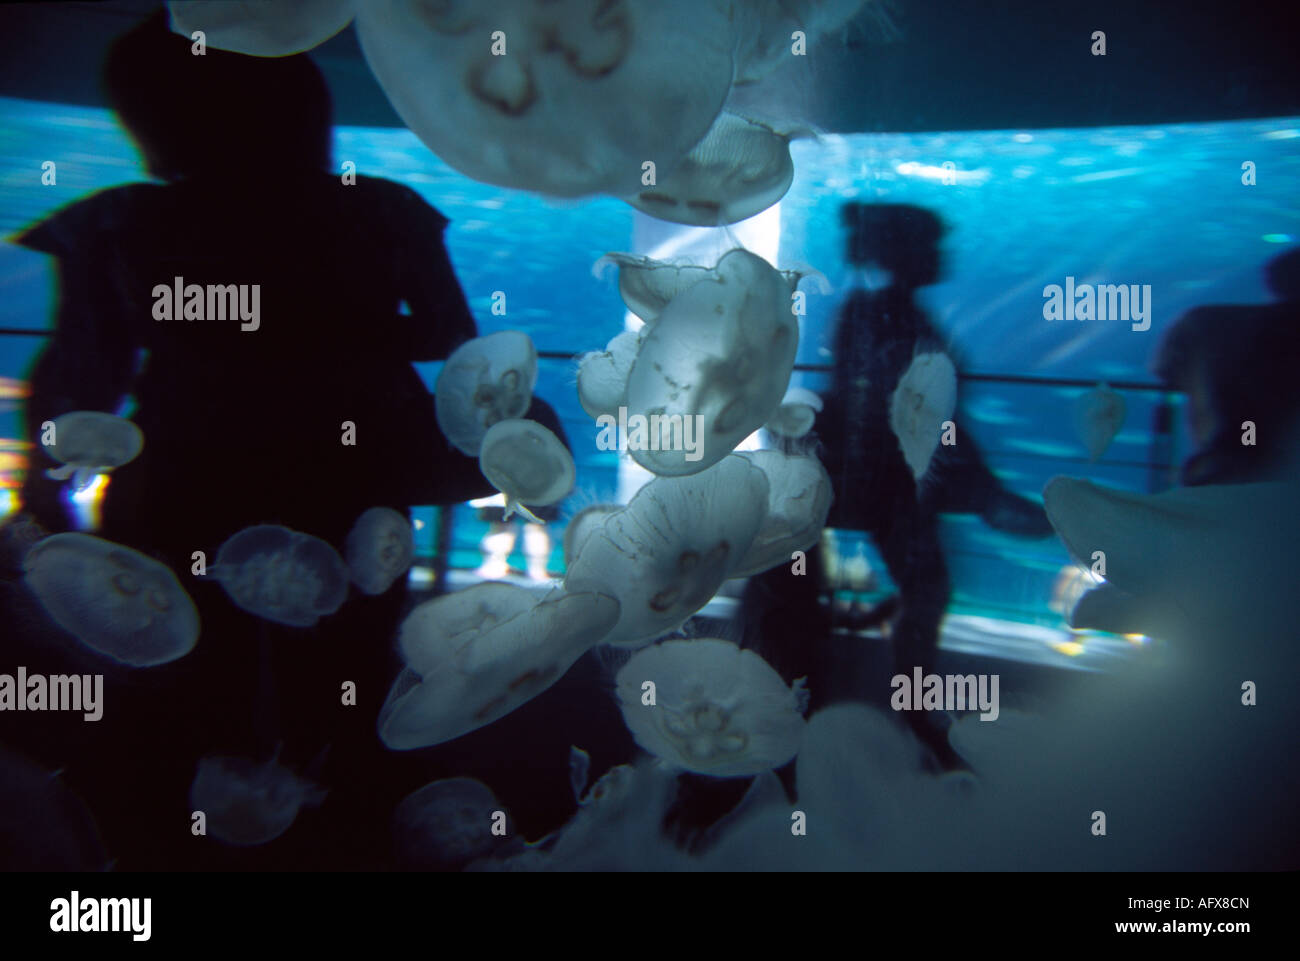 Fish tank japan - Stock Photo Tourists Seen Through A Jelly Fish Tank At Aquamarine Aquarium In Fukushima Japan